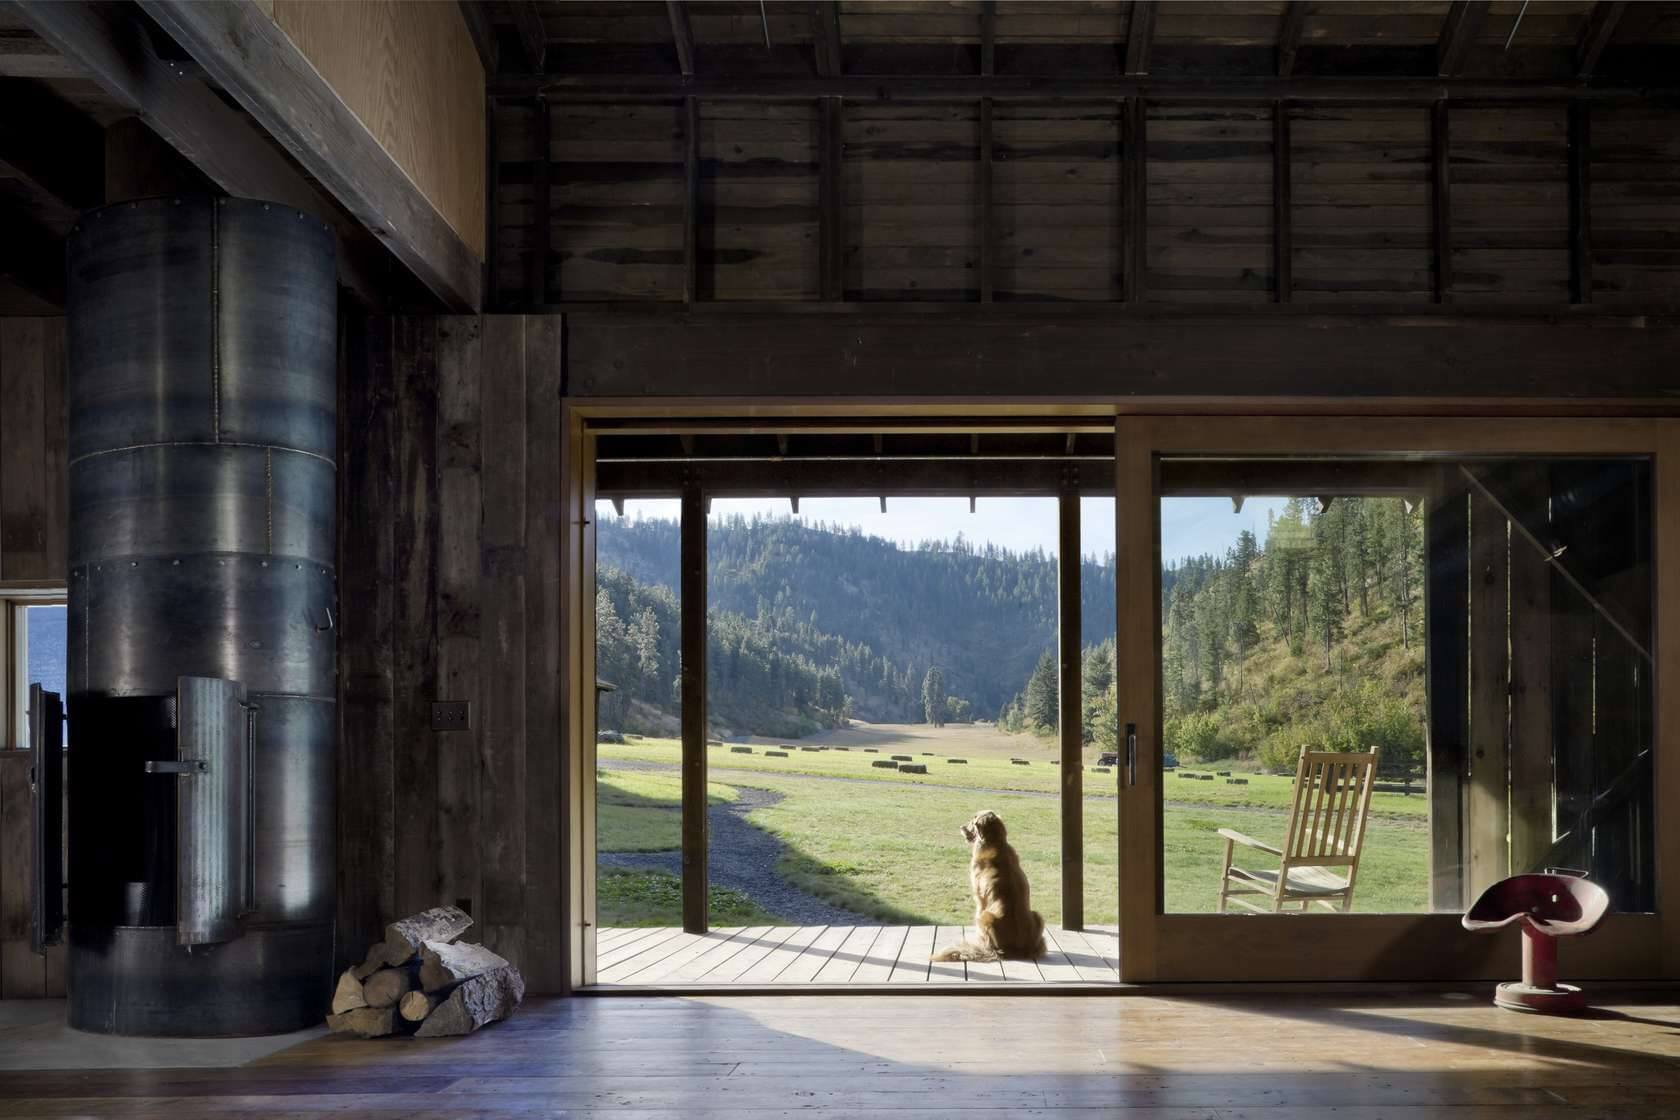 Canyon Barn wooden interior golden retriever enjoying the view